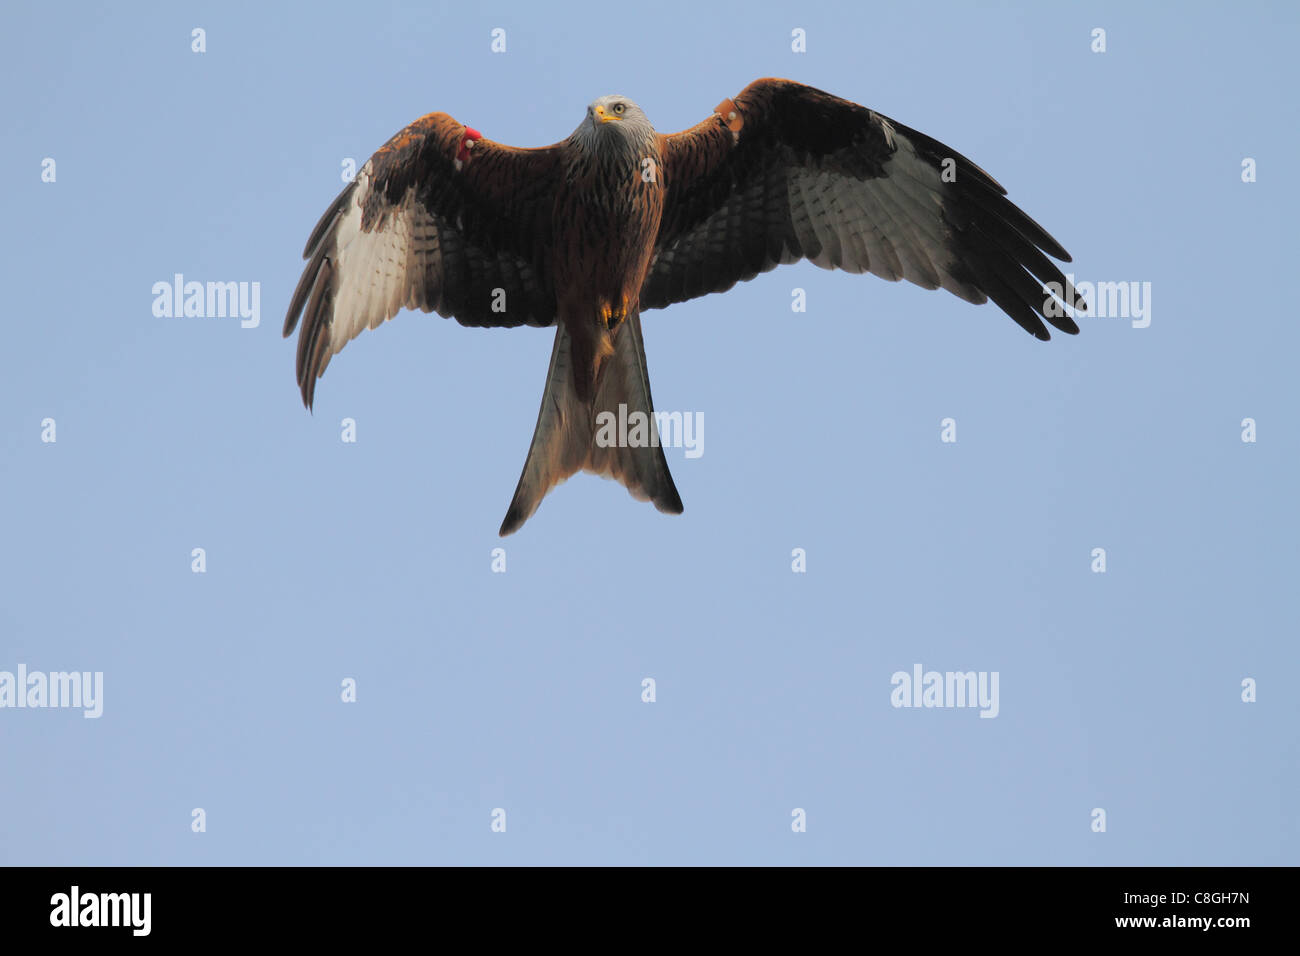 a close up detailed view of a red kite with tags flying low - Stock Image